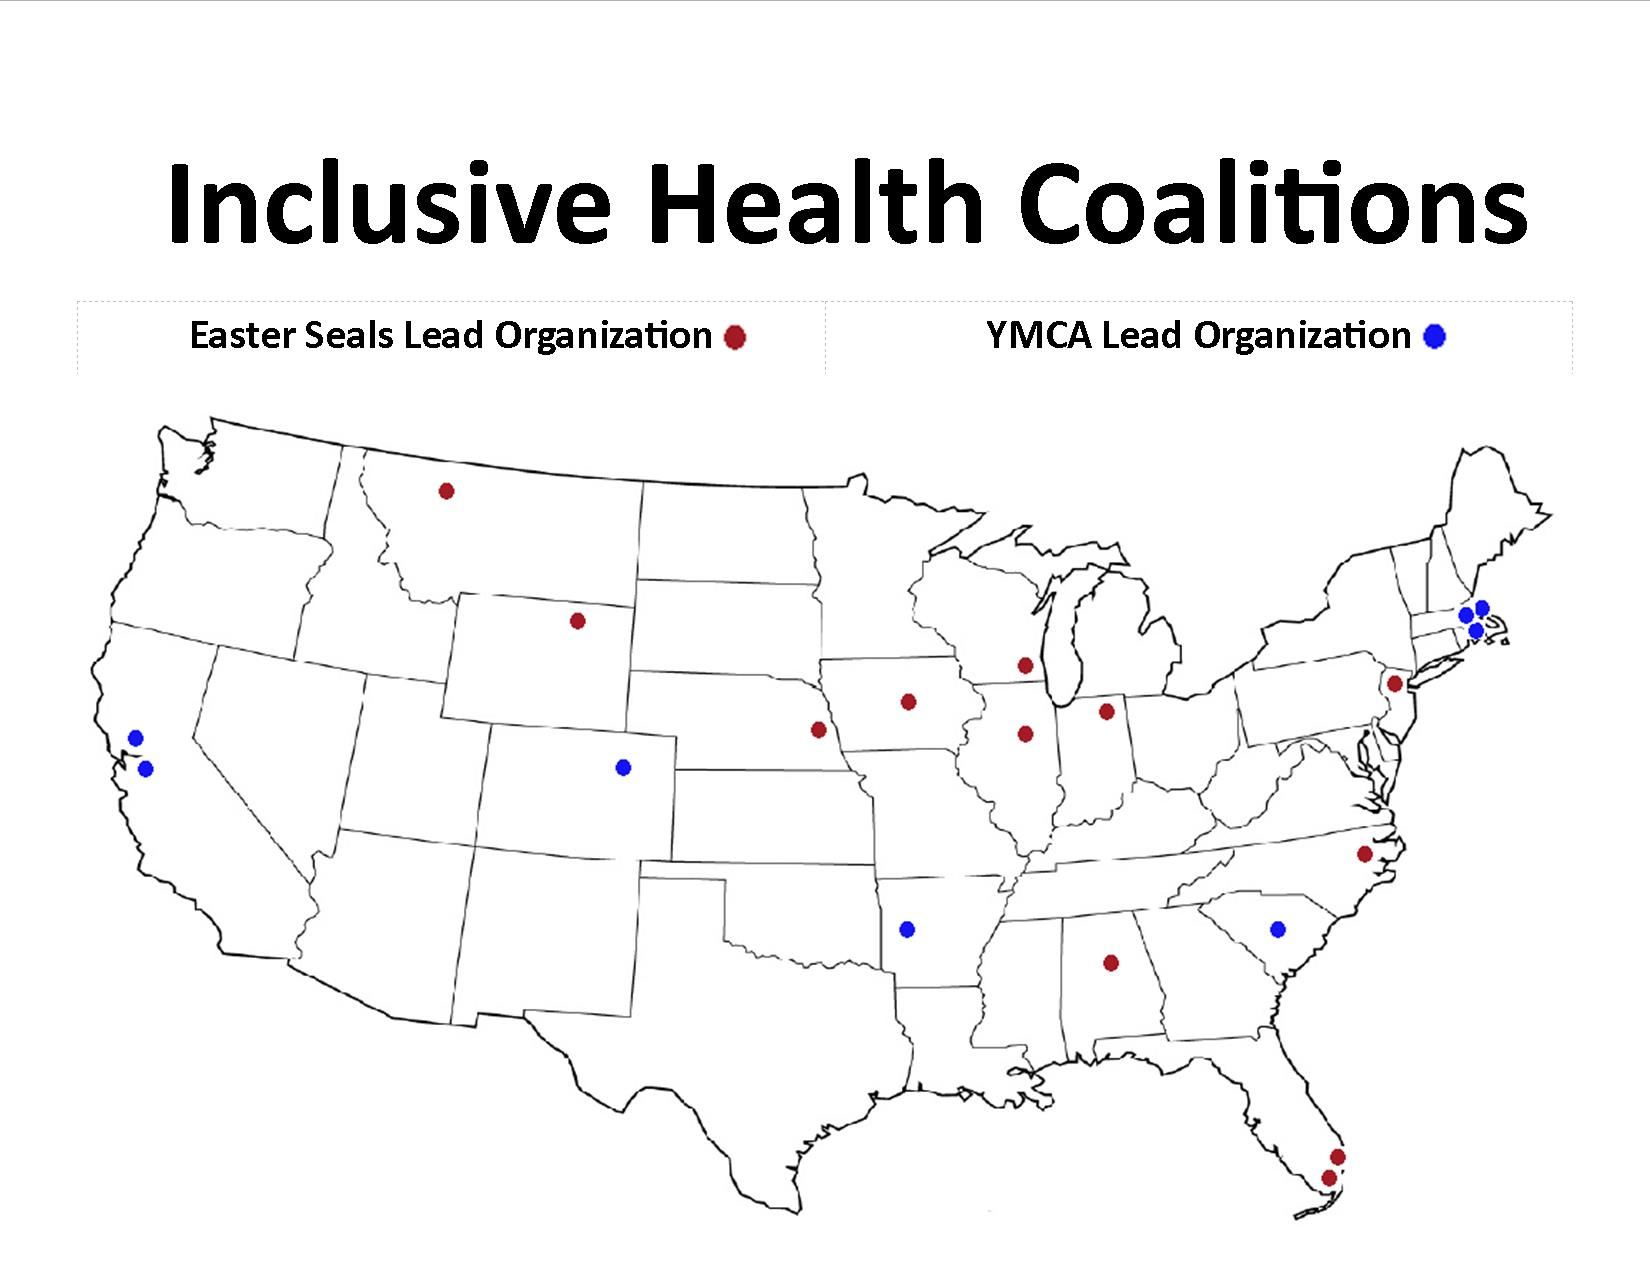 a map highlighting the locations of 20 inclusive health coalitions across the US